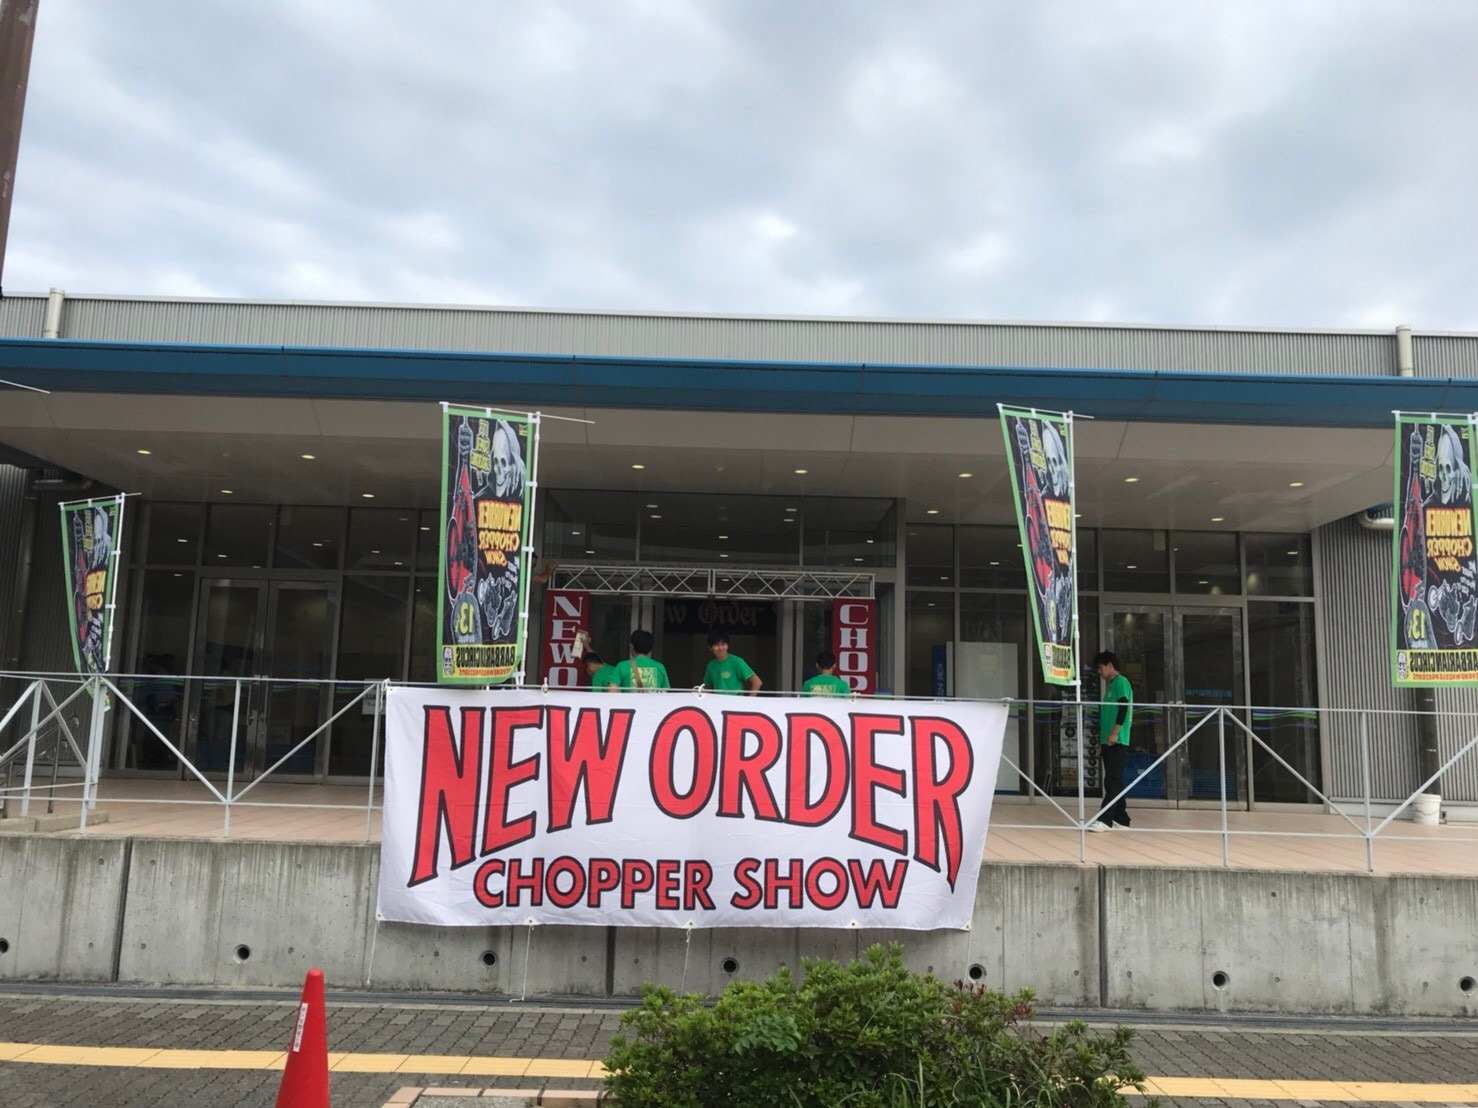 2018 NEW ORDER CHOPPER SHOW_b0160319_14395733.jpg